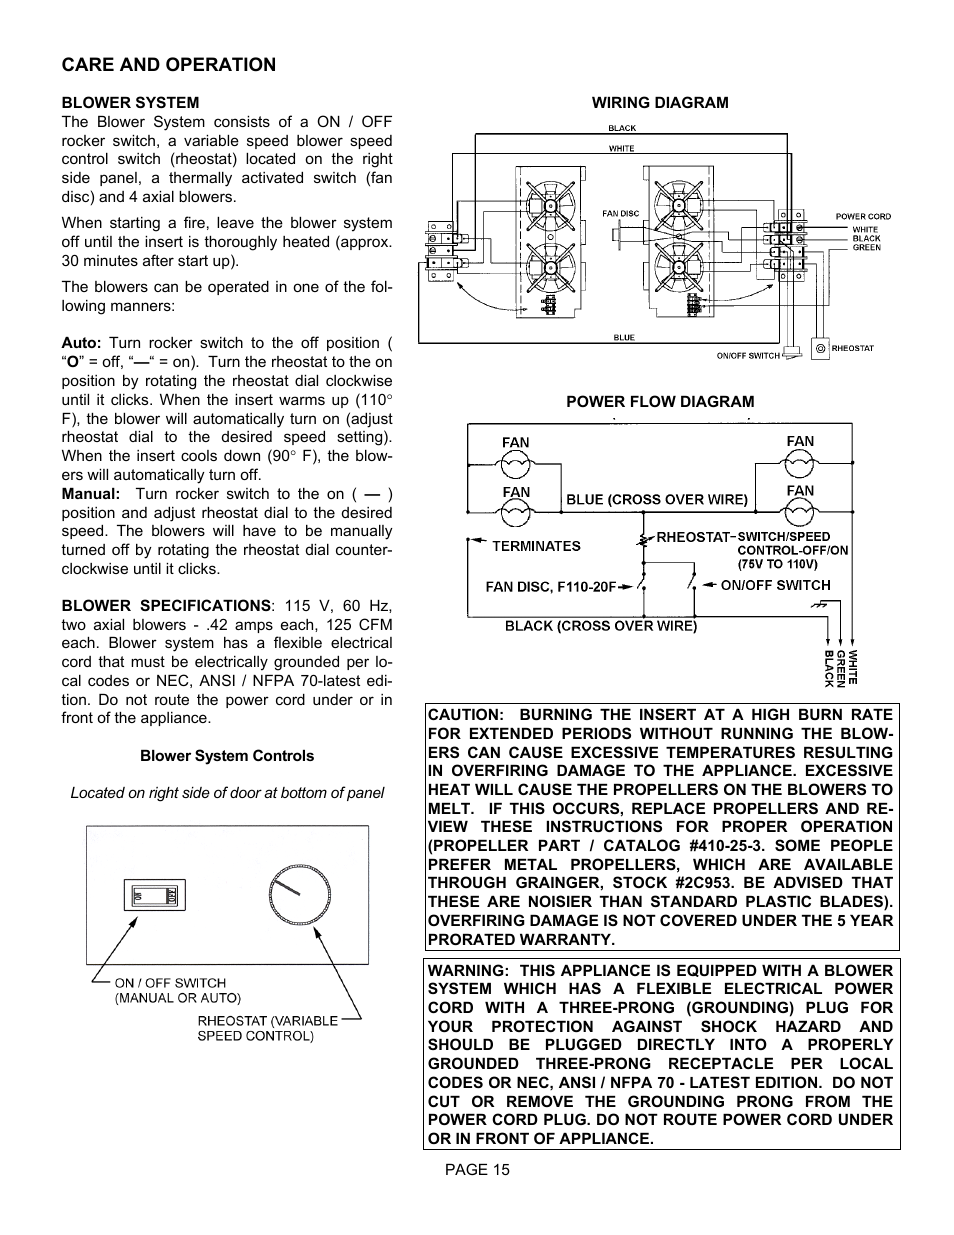 Stove Rheostat Wiring Diagram List Of Schematic Circuit Buck Thermostat Lg Earth 2800ht User Manual Page 15 29 Rh Manualsdir Com